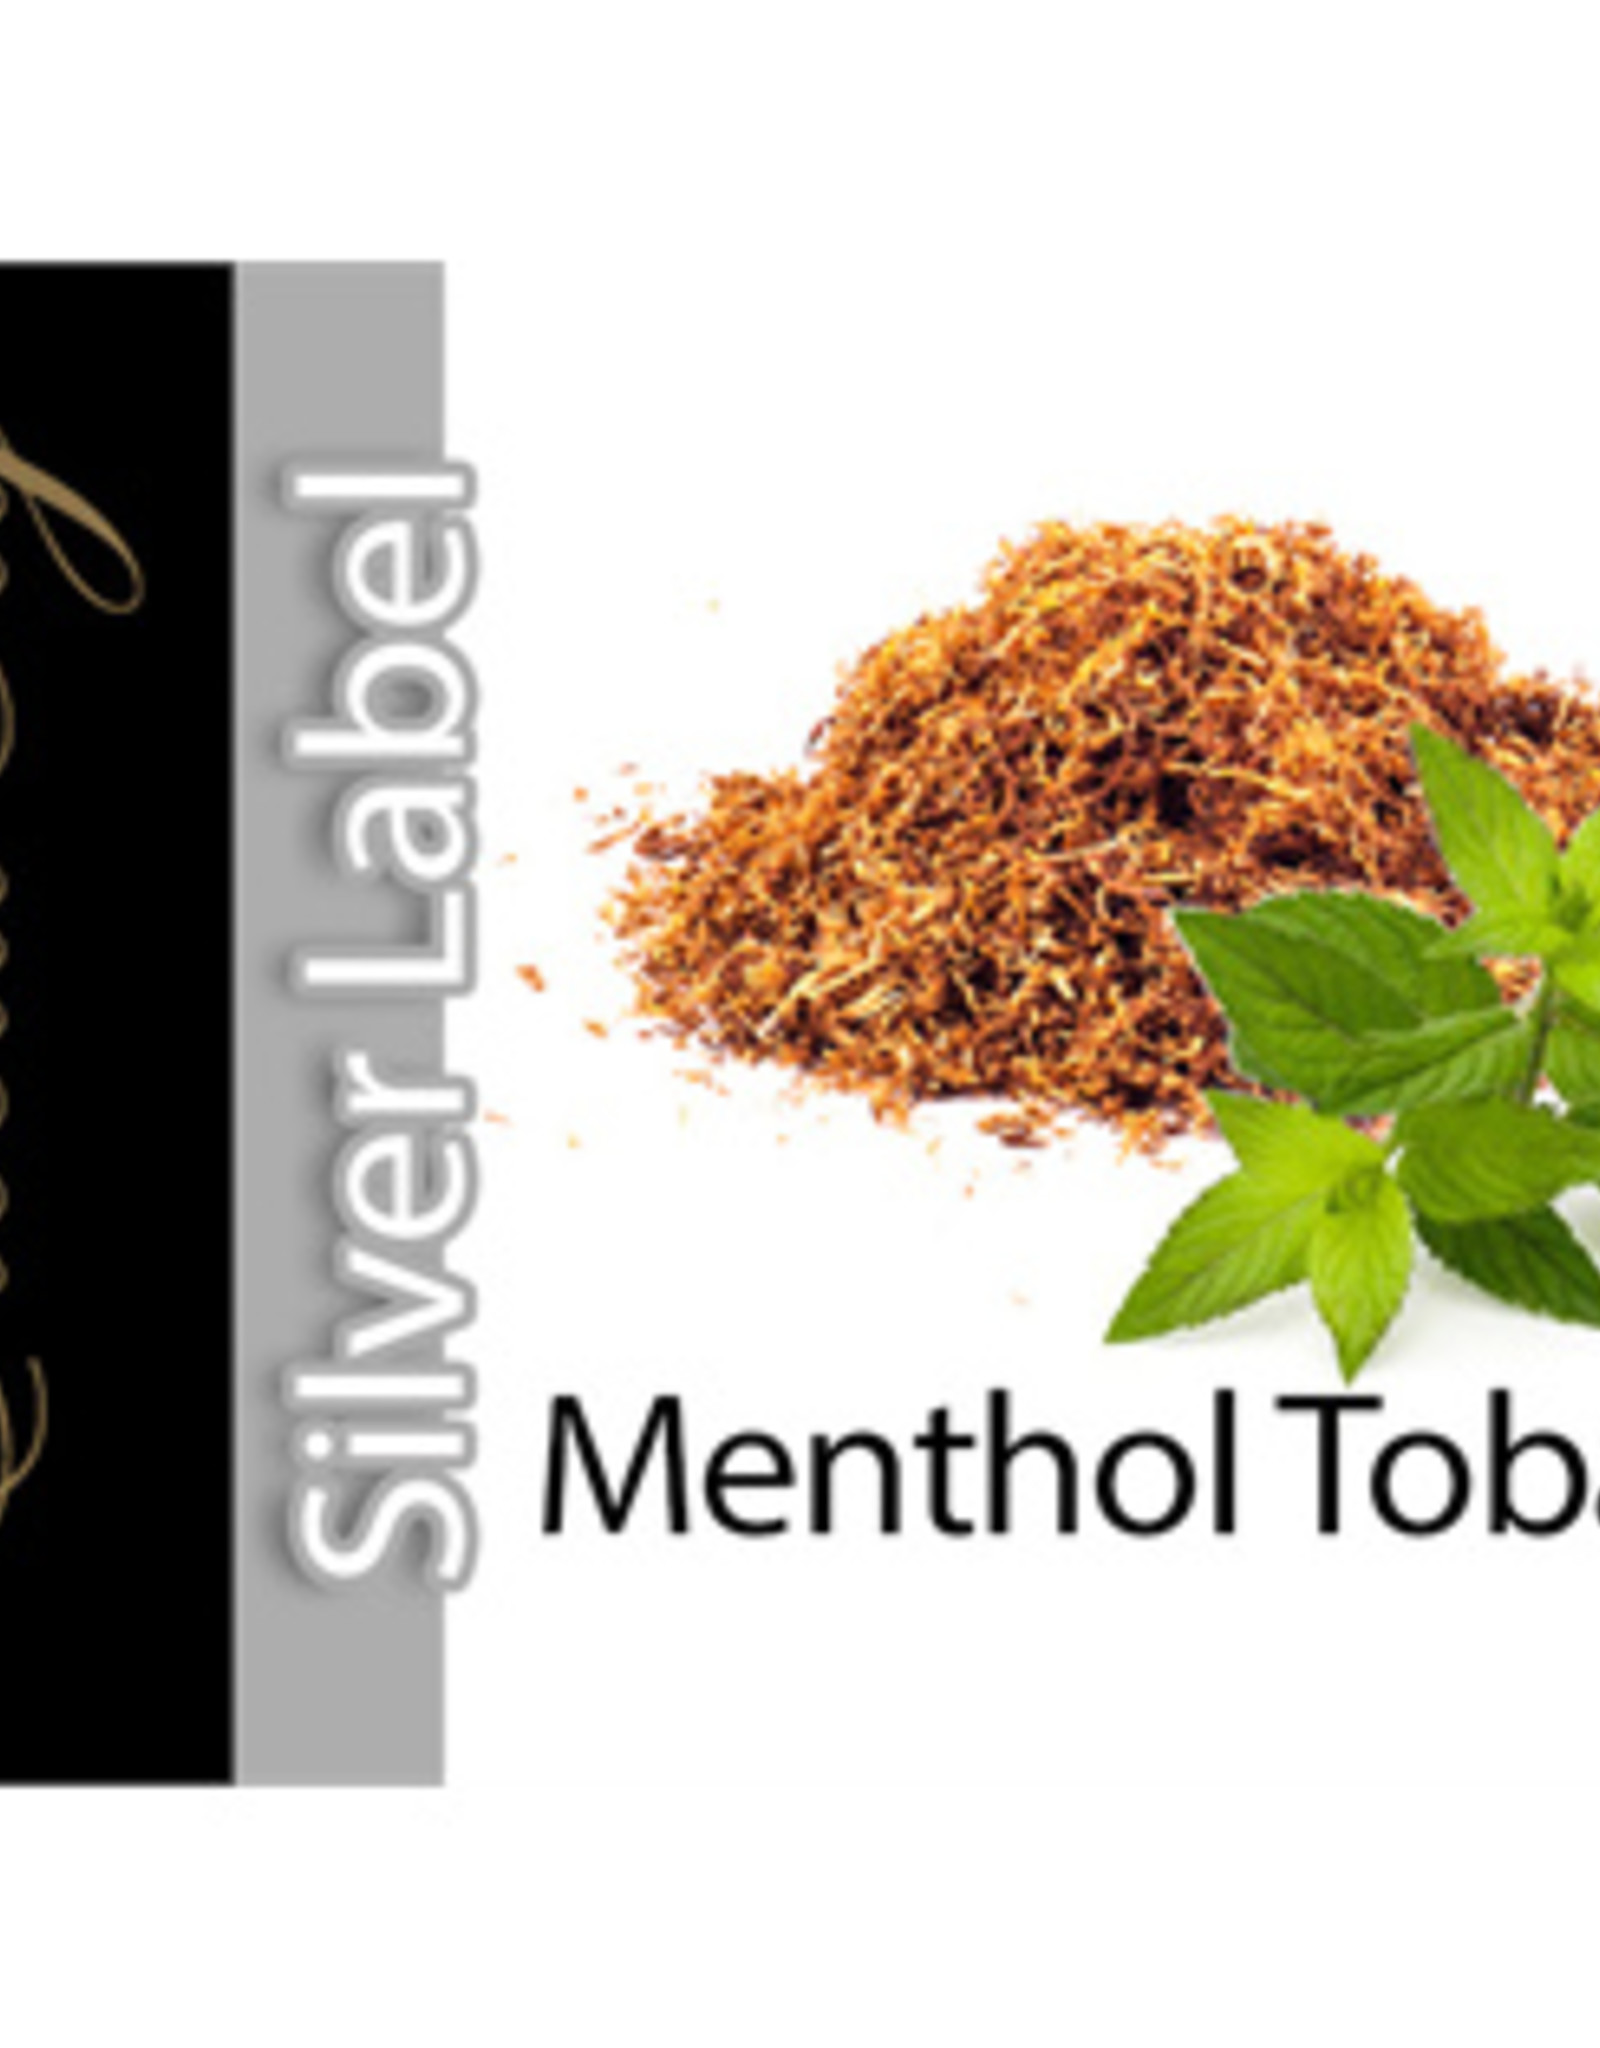 Exclucig Exclucig Silver Label E-liquid Menthol Tobacco 3 mg Nicotine